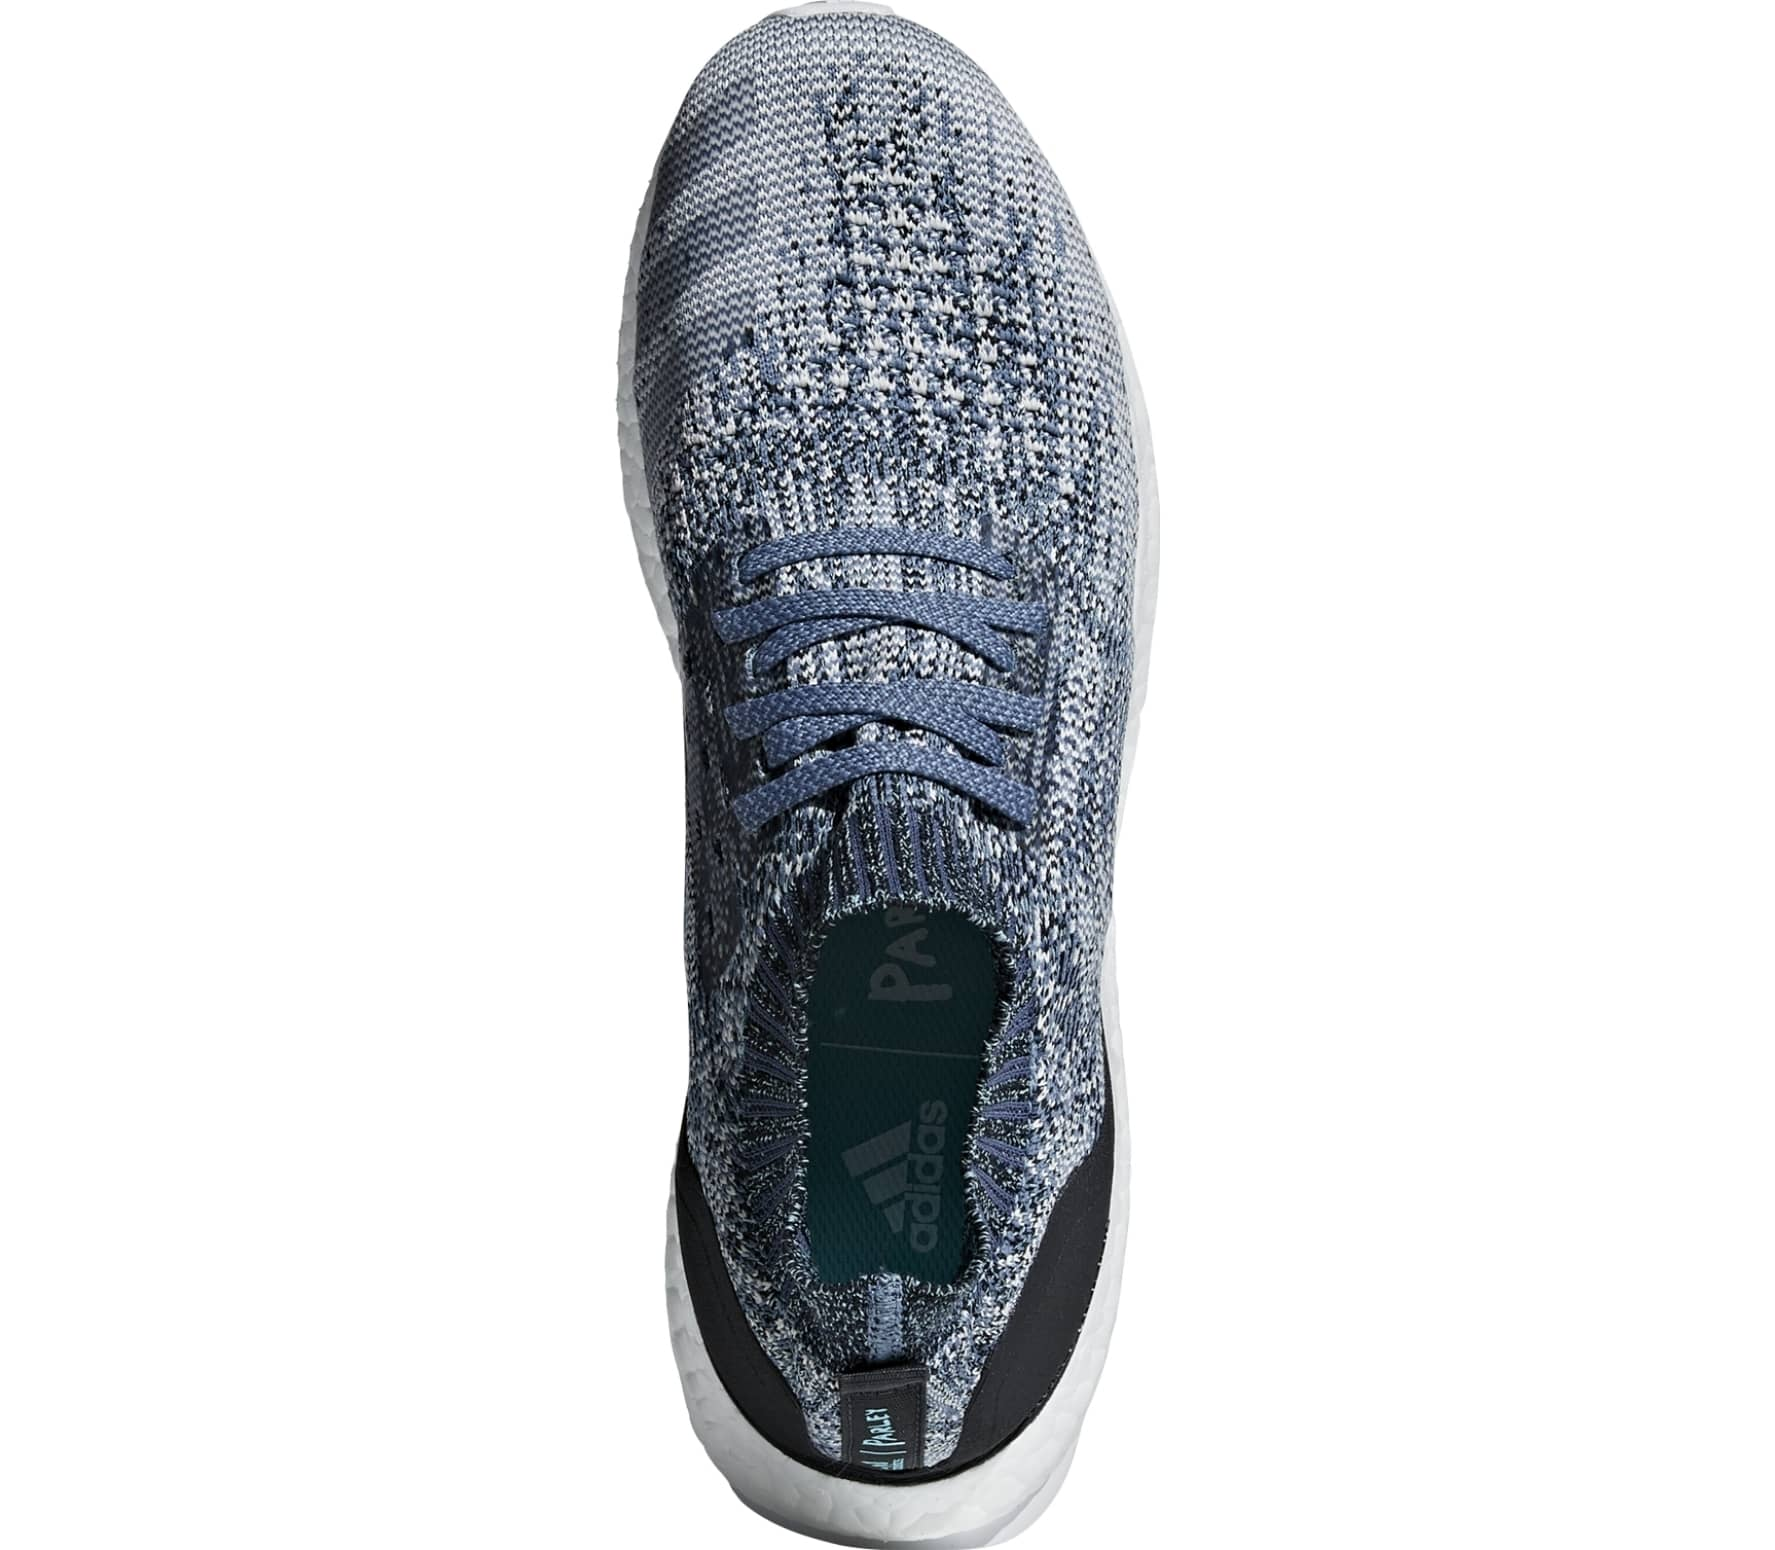 Adidas - UltraBOOST Uncaged Parley men s running shoes (grey blue ... f9ef8b65f9b1b